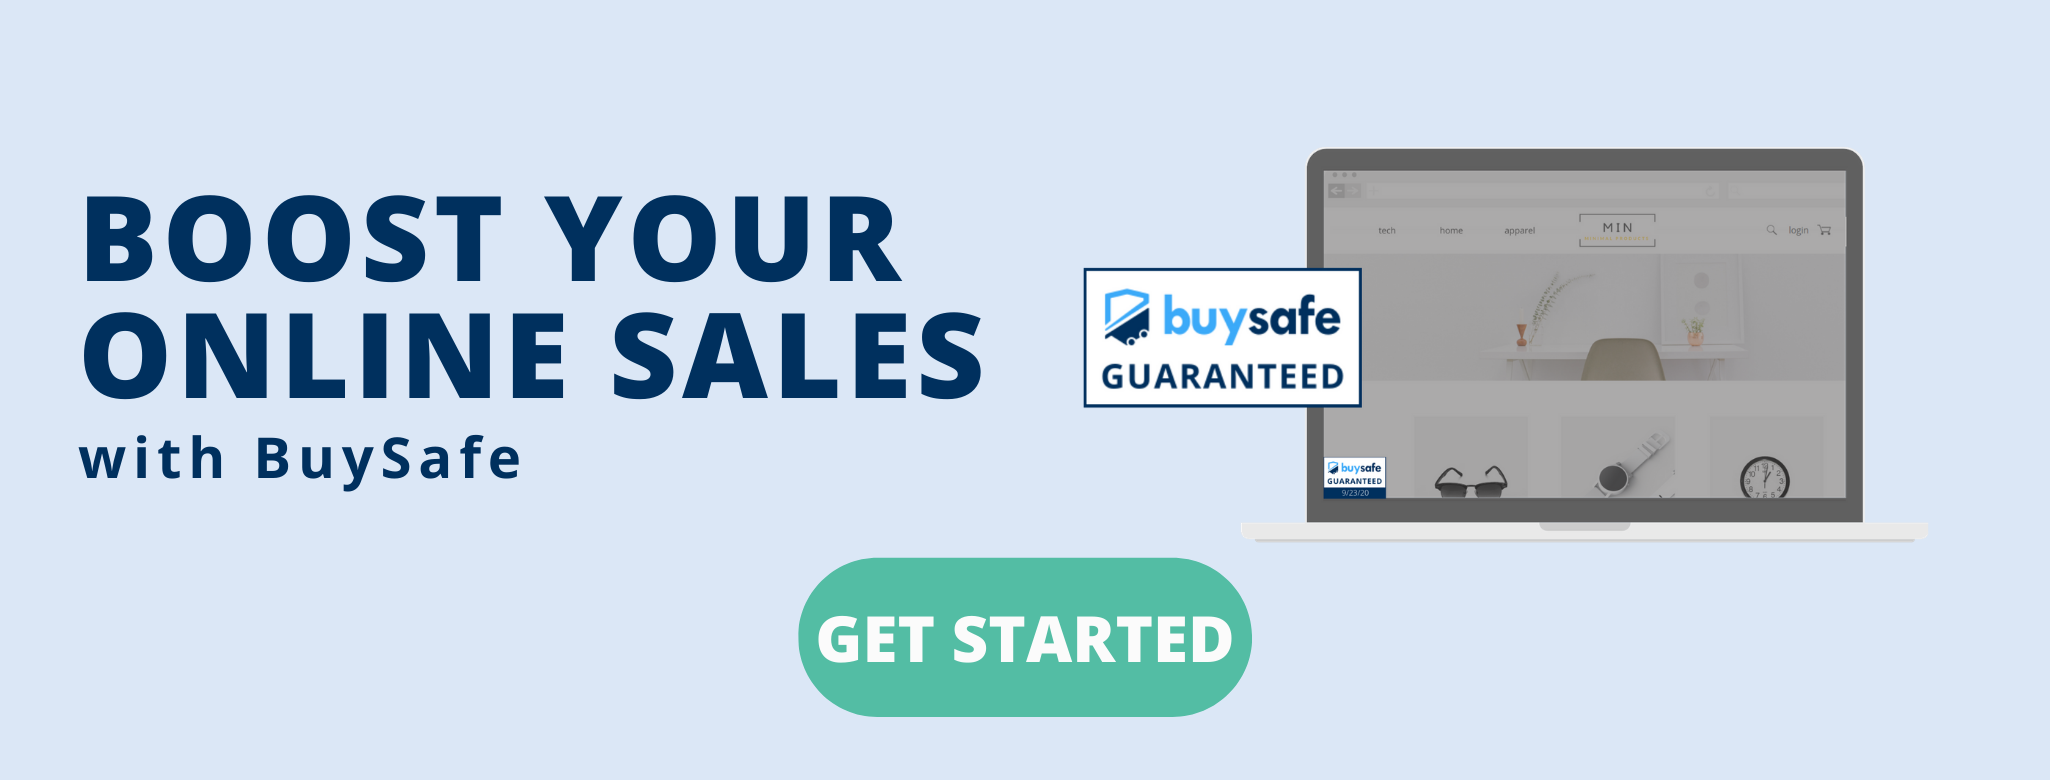 Get started with BuySafe to boost your online sales today